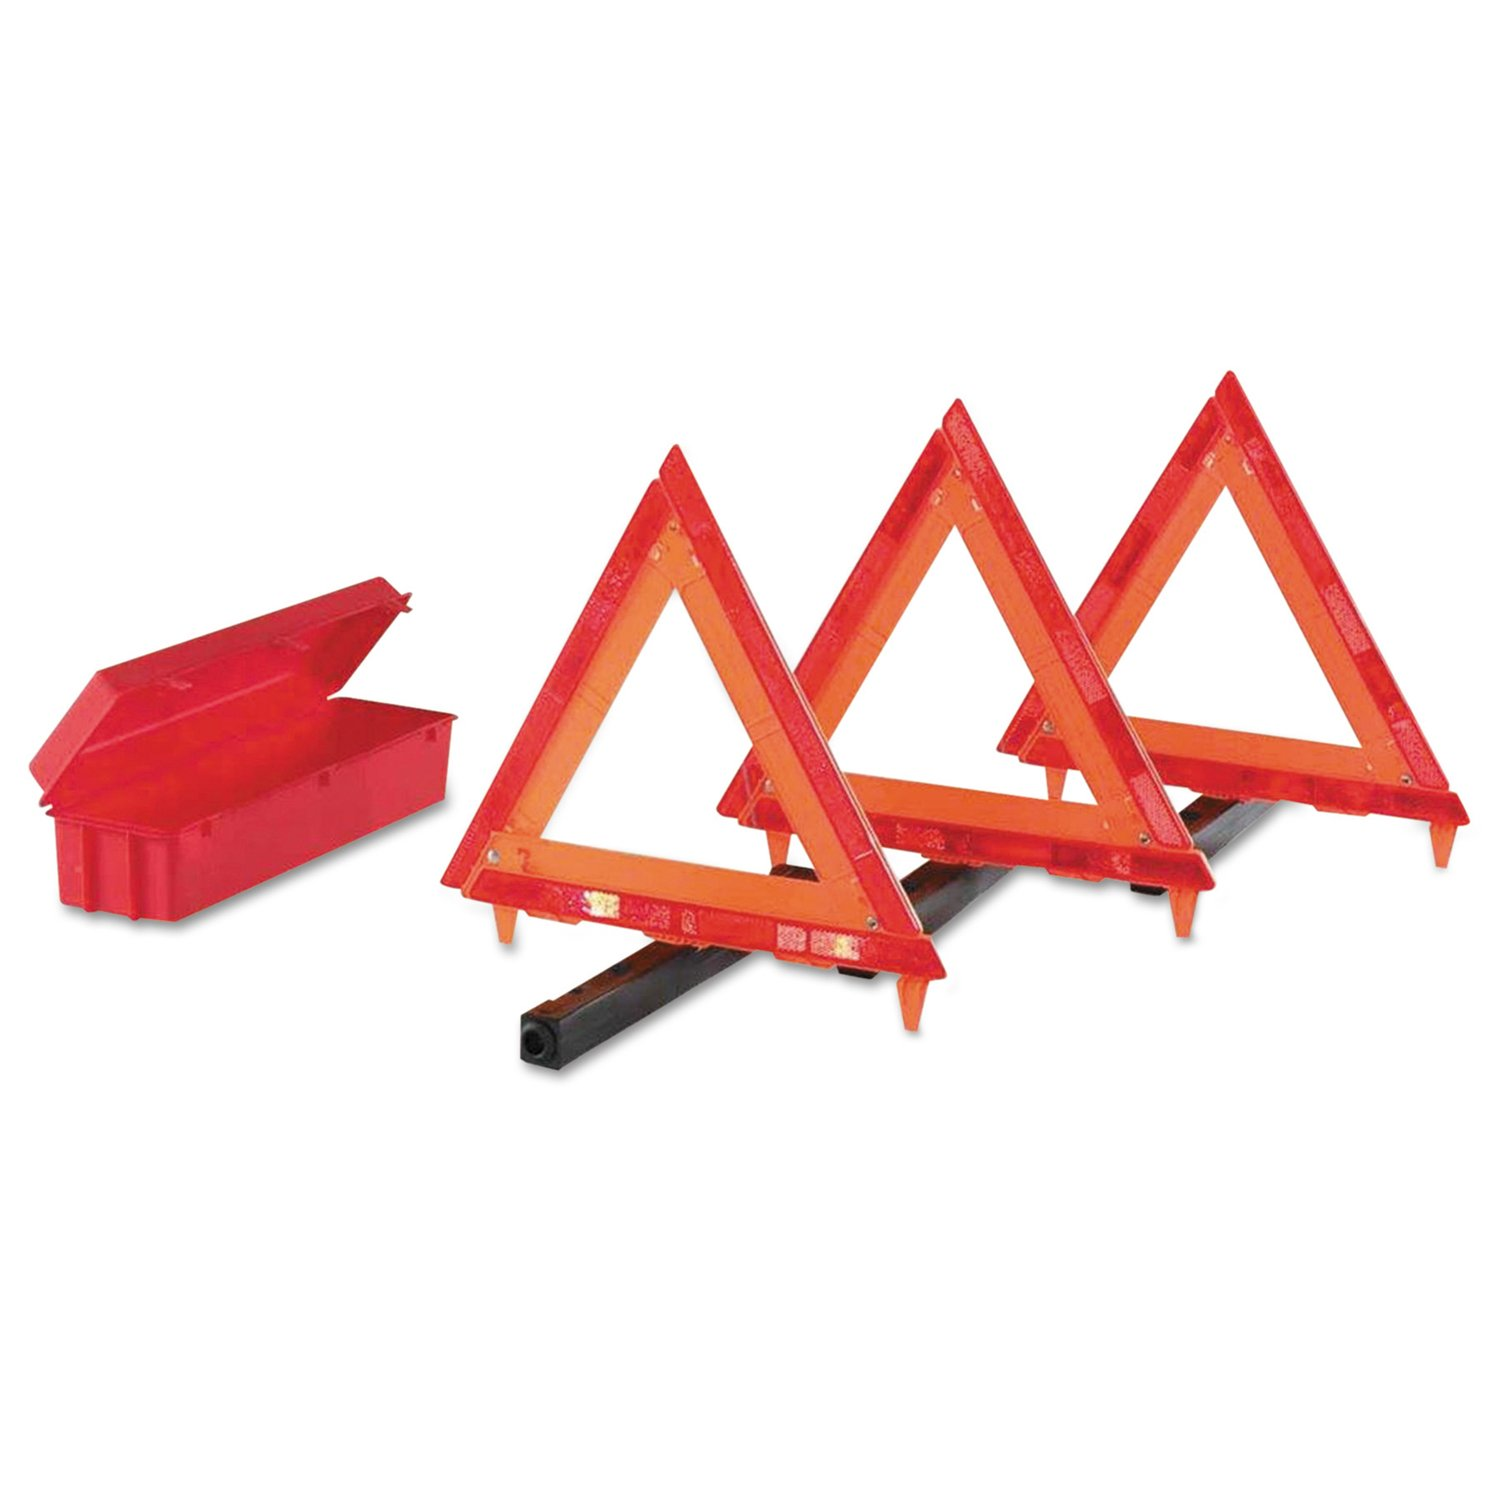 Cortina Safety Products 95-03-009 Three Triangles in Living Hinge Box with 1 Pack